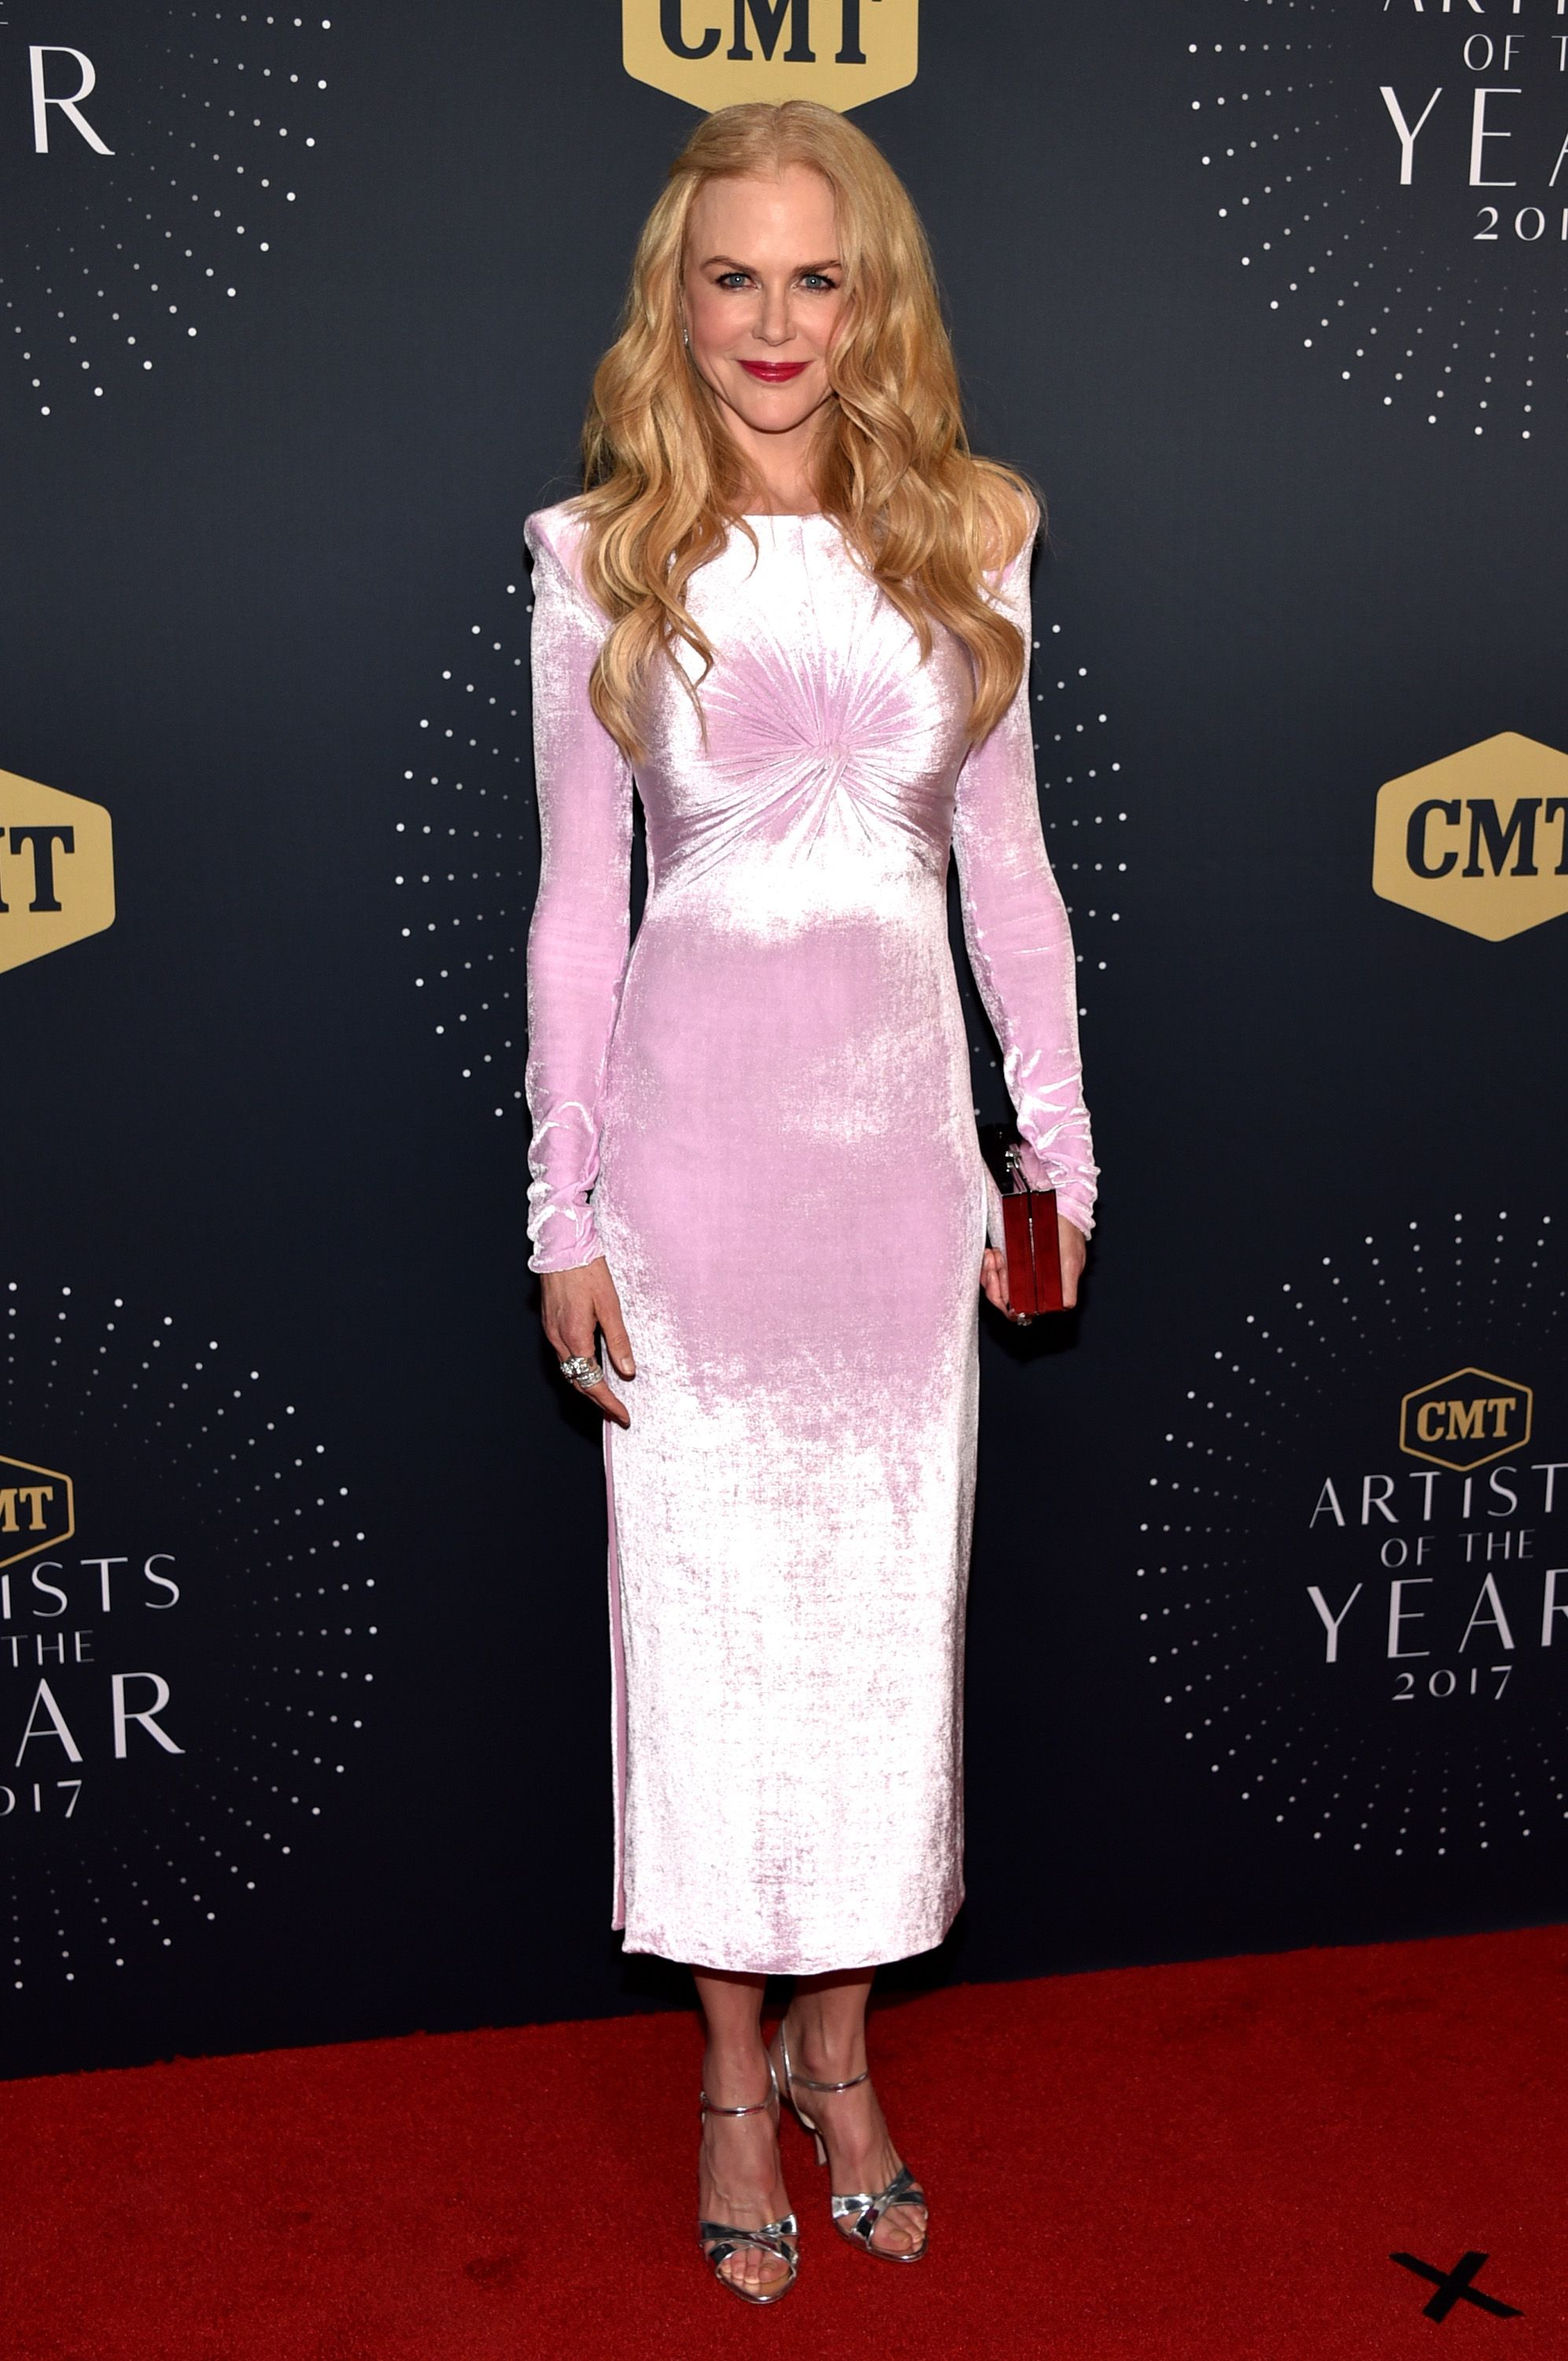 Best Dressed Celebrities This Month - October 2017